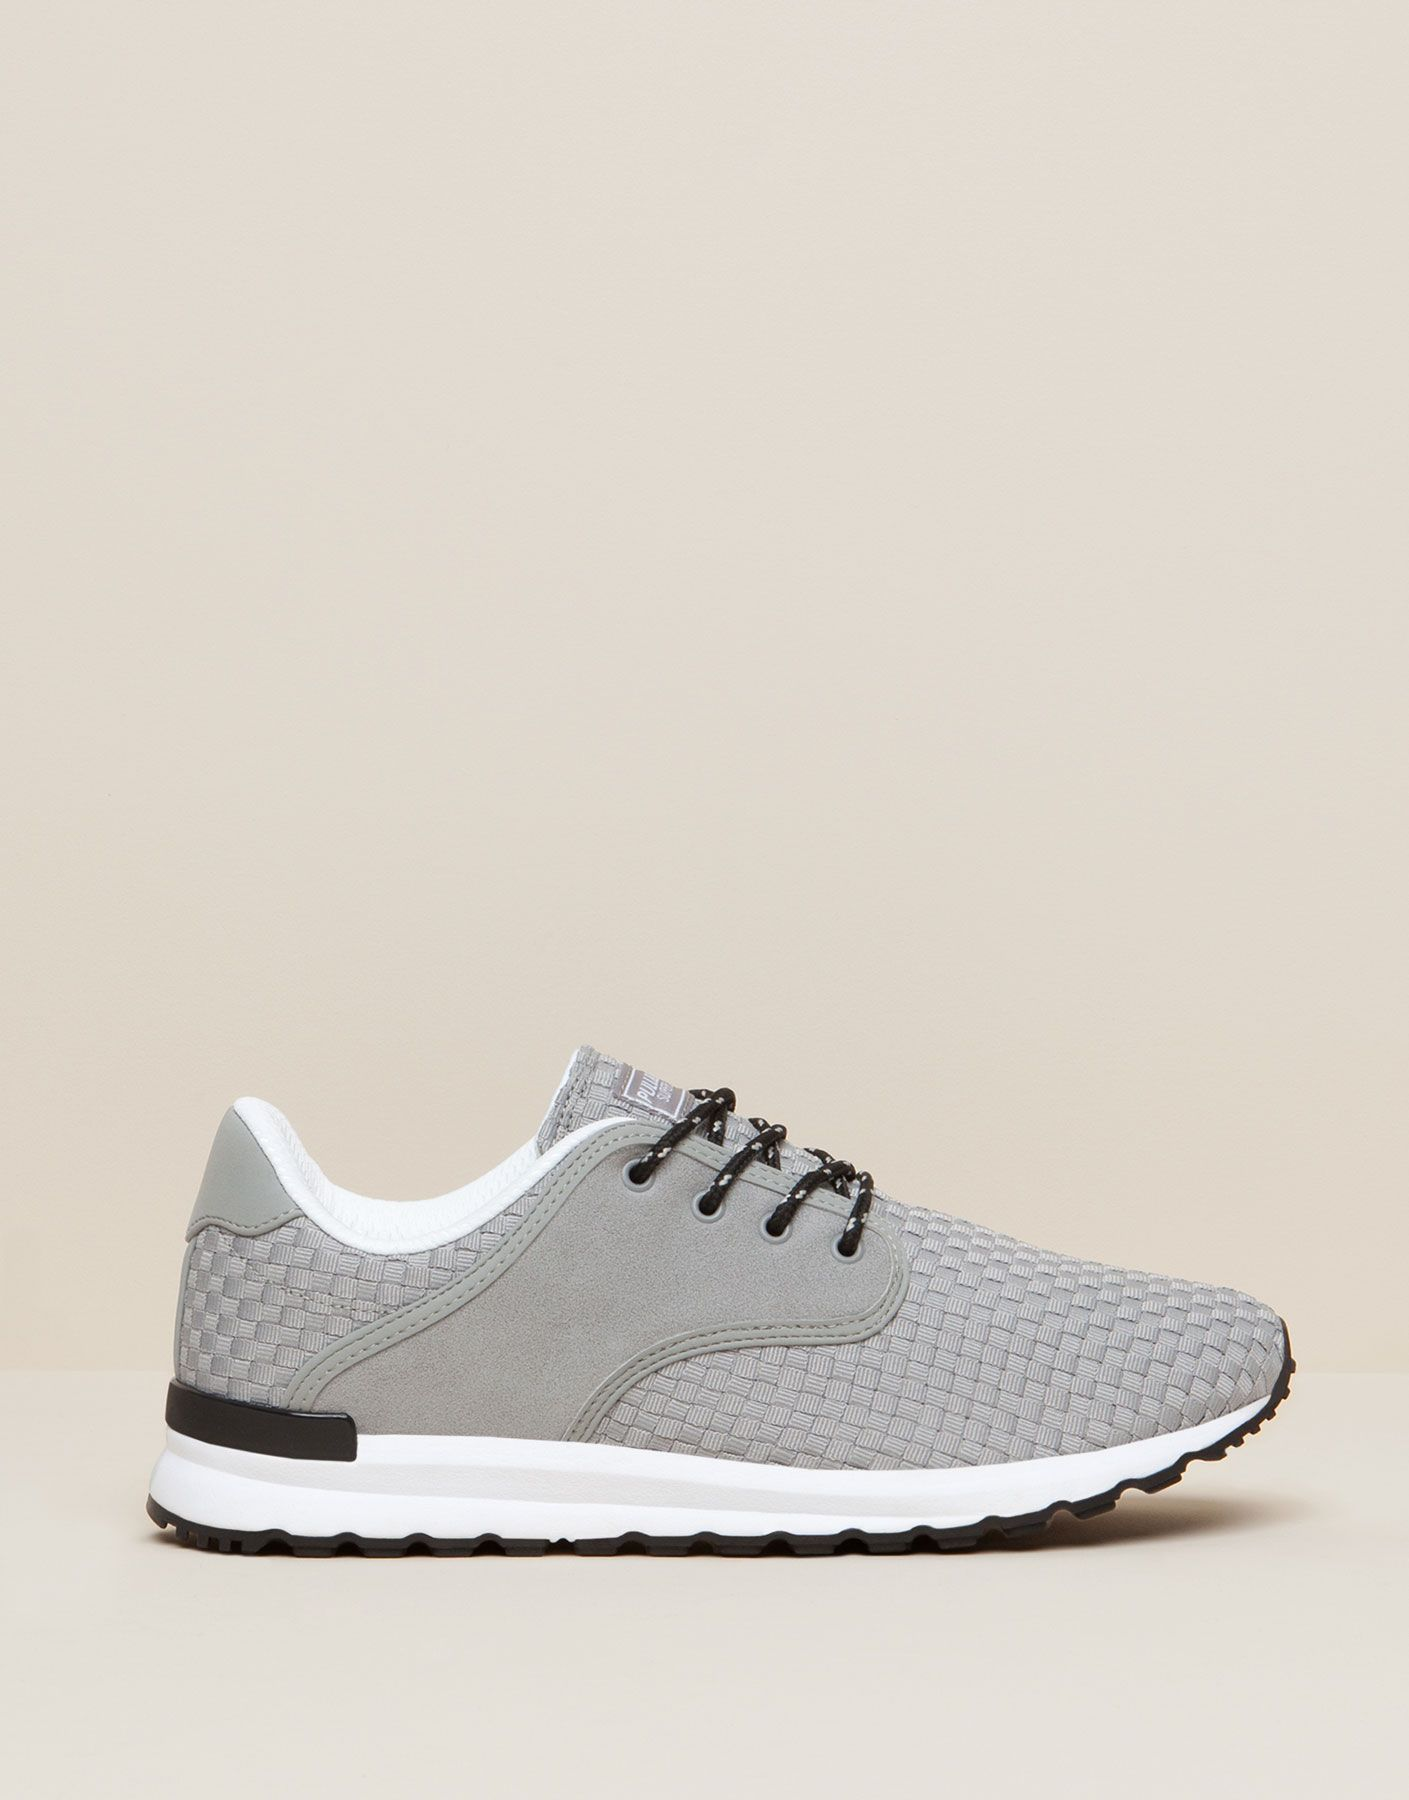 Pull And Bear Homme : homme, BASKETS, TRESSAGE, FAVORIS, HOMME, PULL&BEAR, France, Sneakers, Nike,, Sneakers,